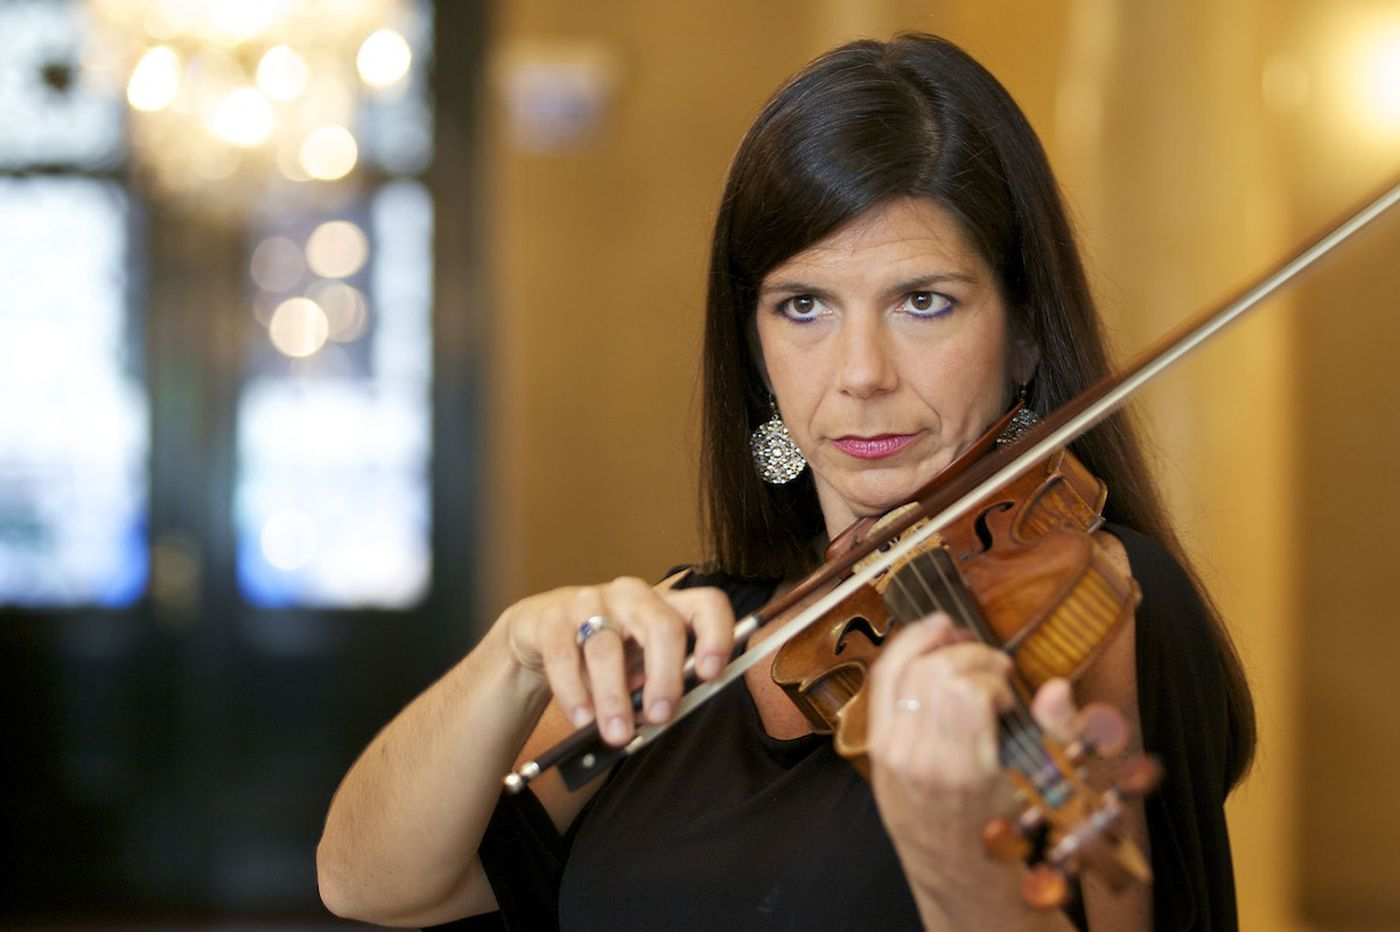 Philly's classical music season has arrived. Let the experimentation begin.